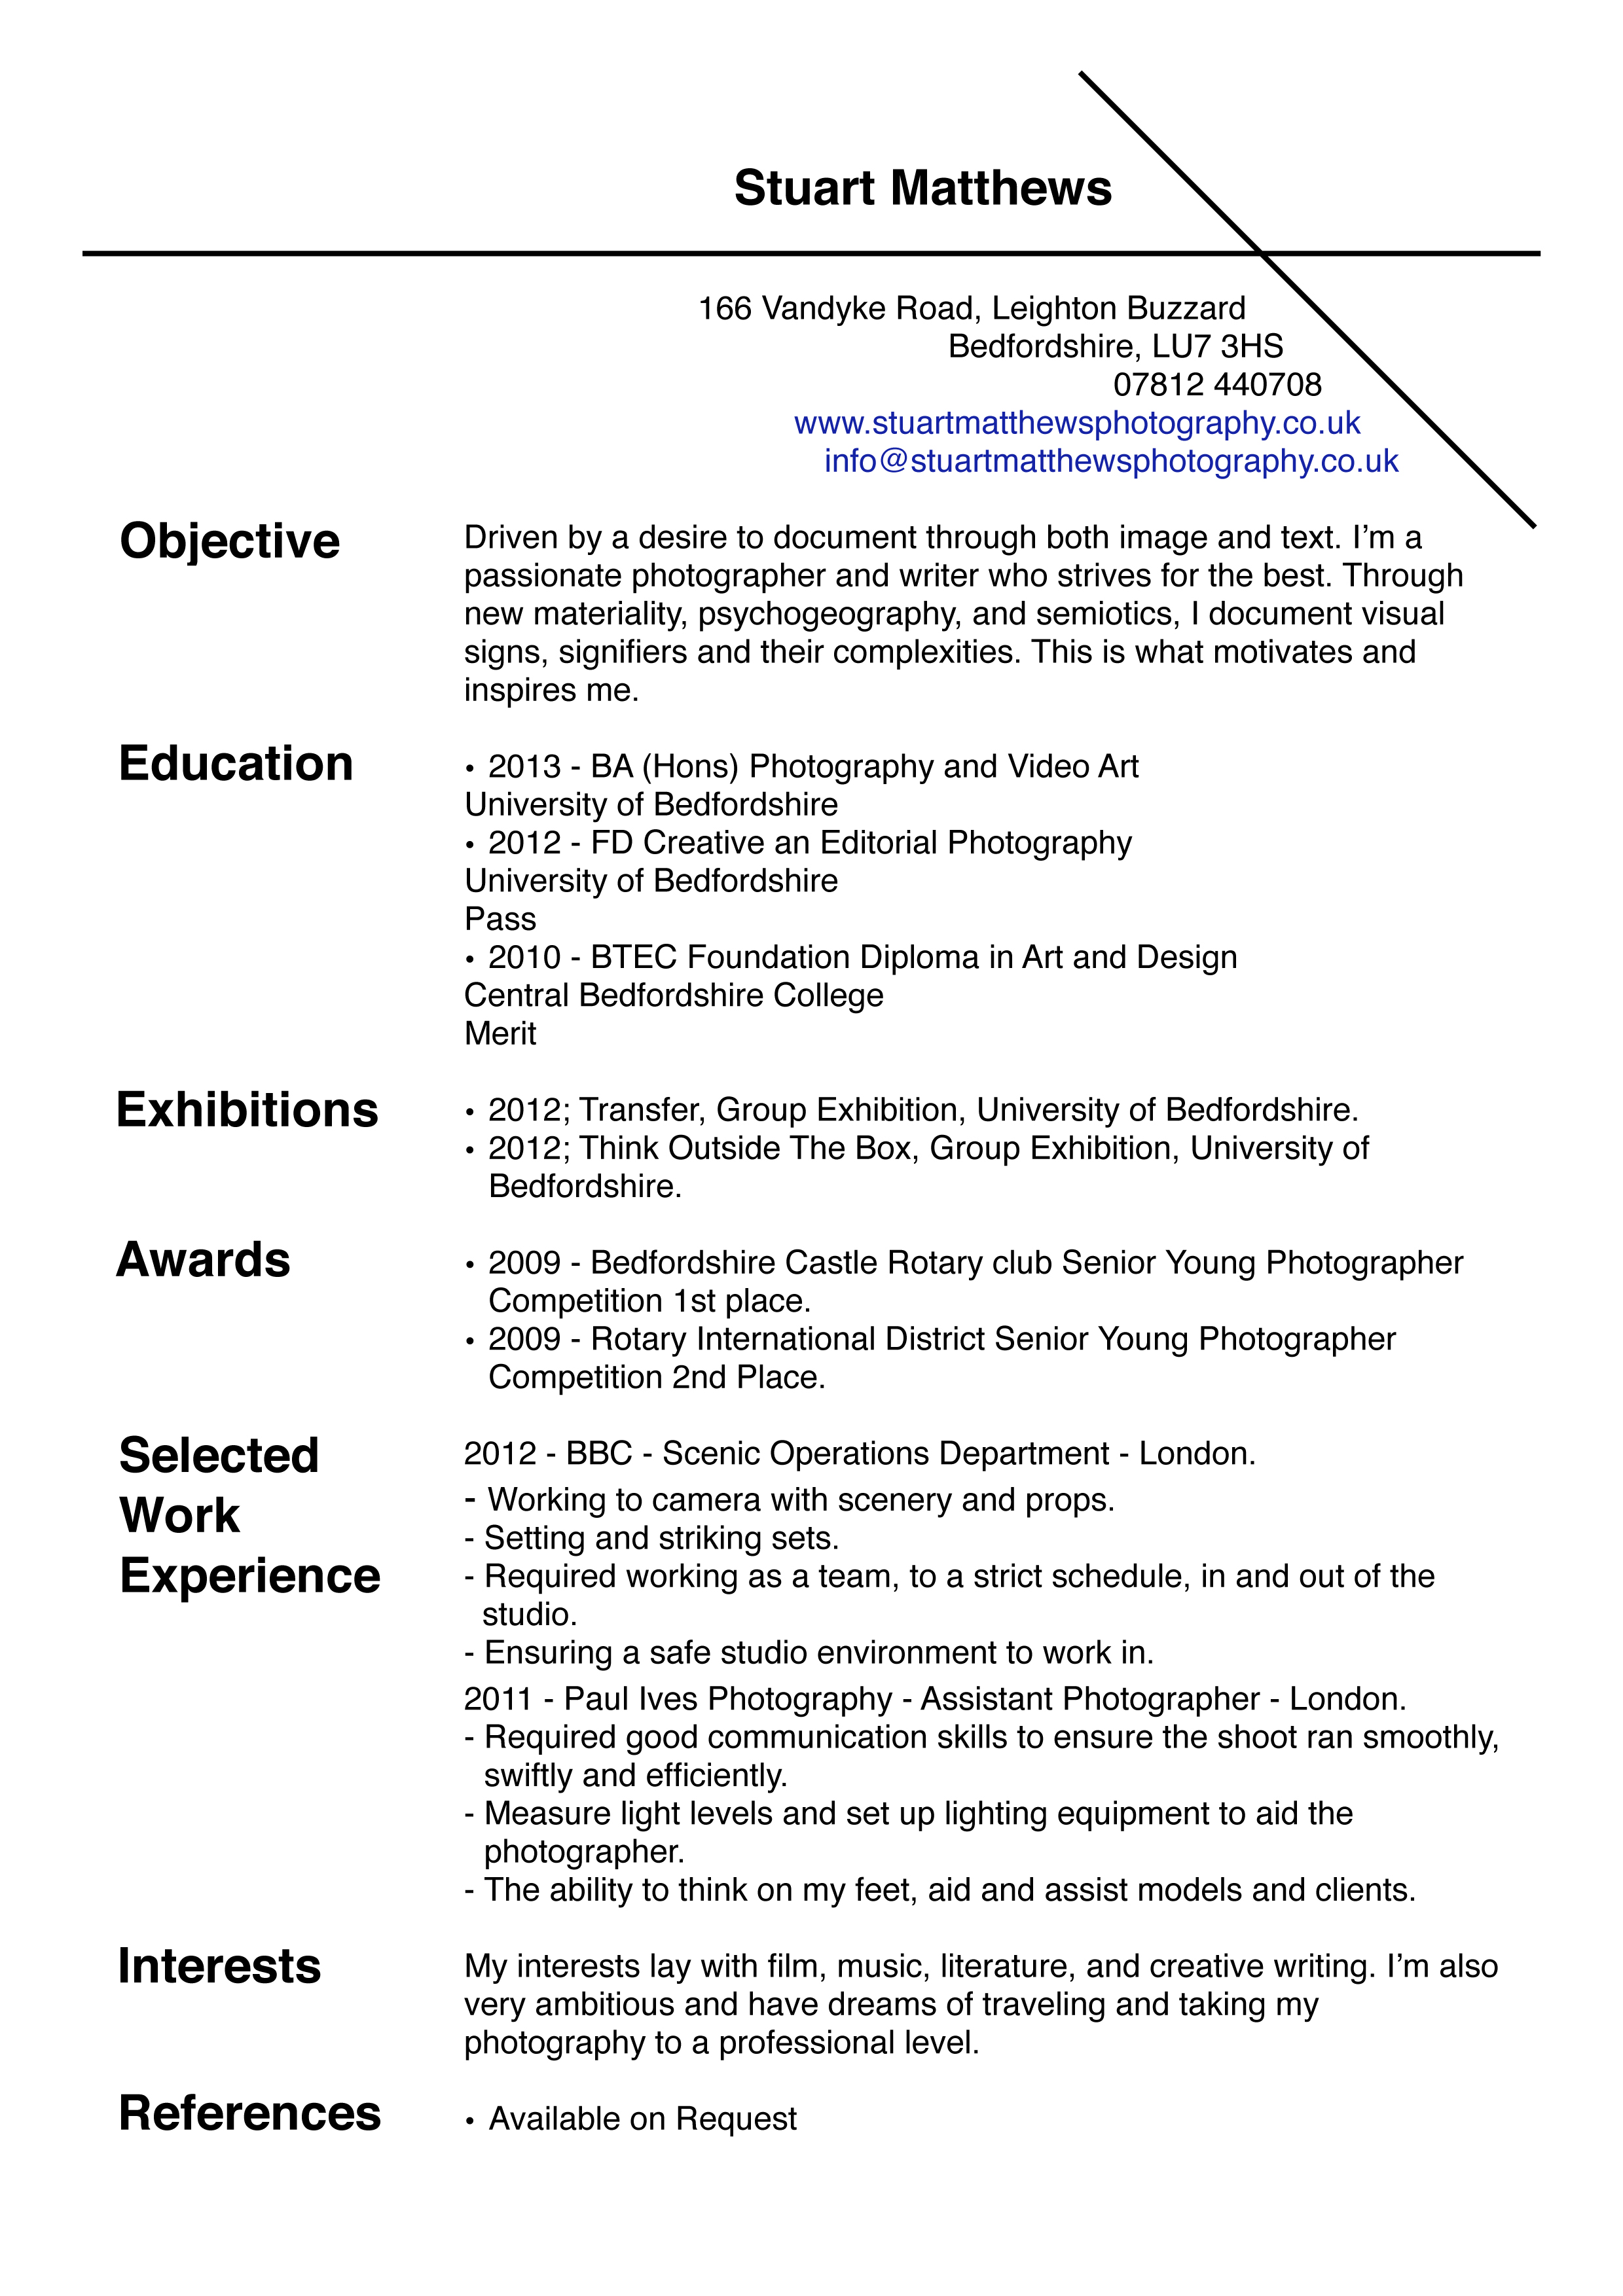 Resume Format For Makeup Artist Curriculum Vitae Stuart Matthews Photography